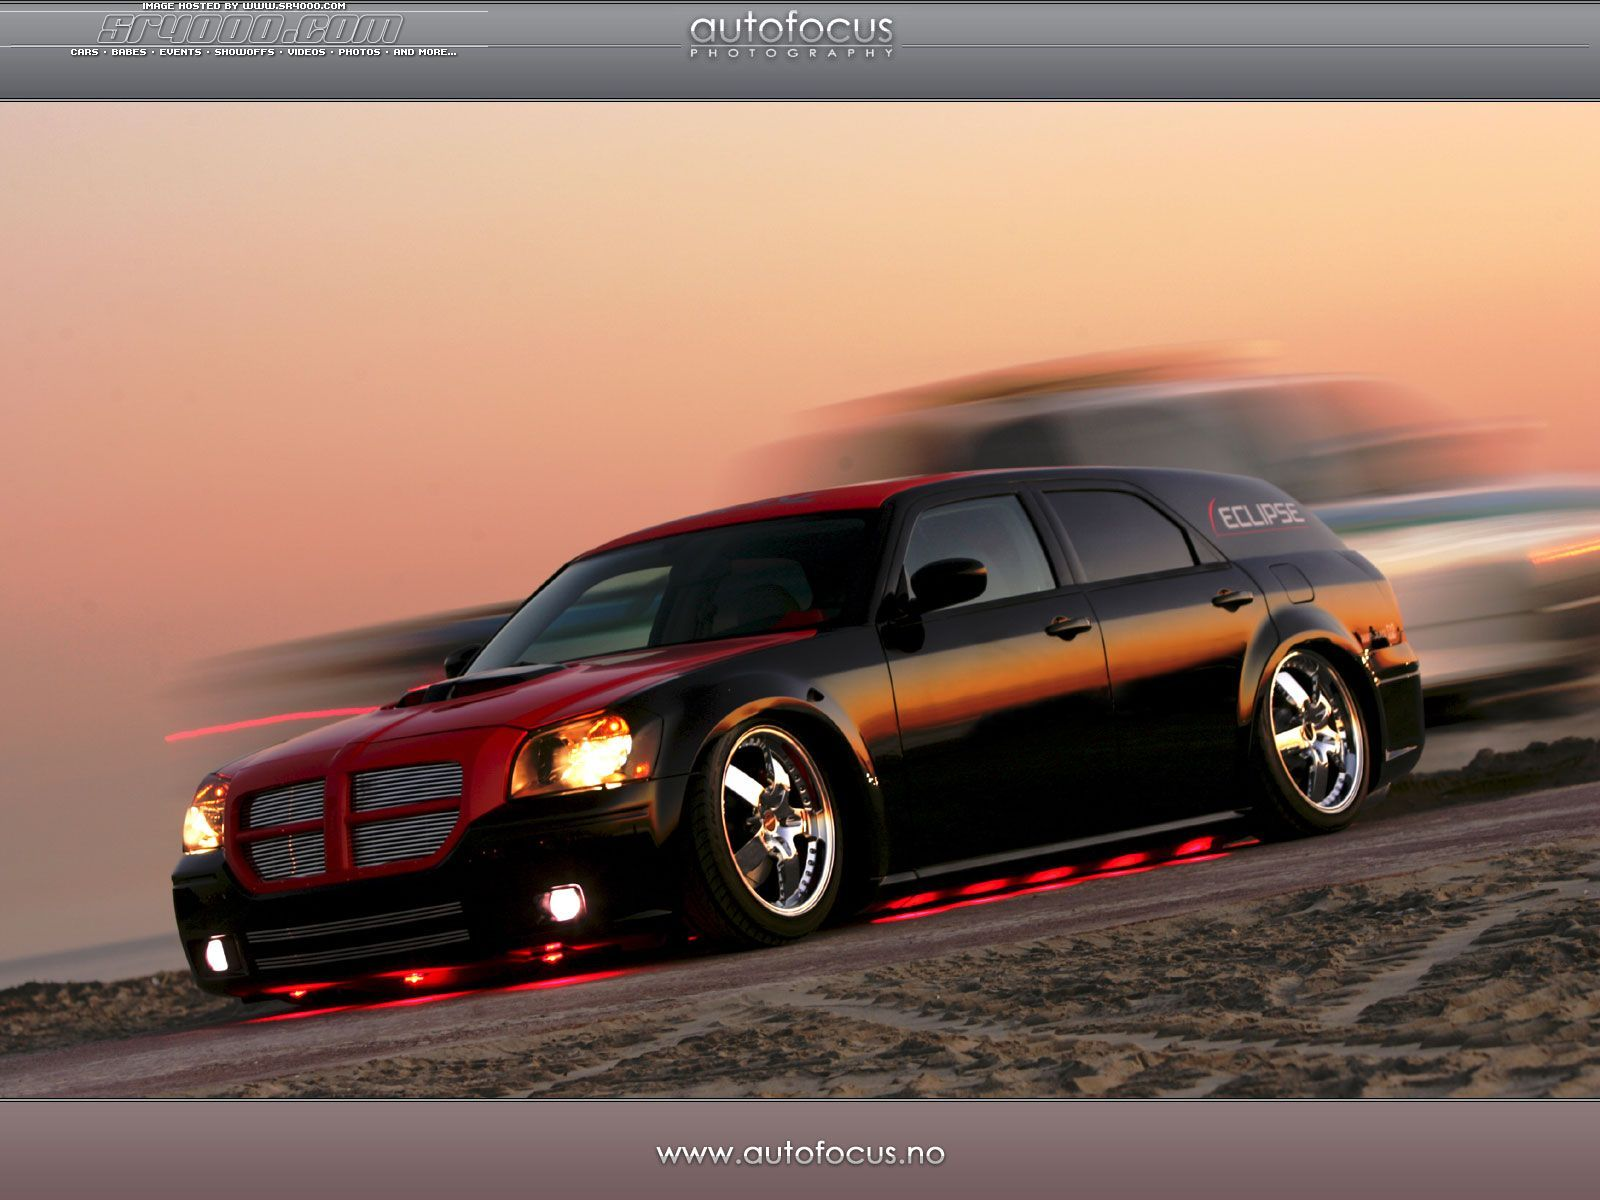 Magnum Dodge Magnum Tuning Tuning Cars This is what i